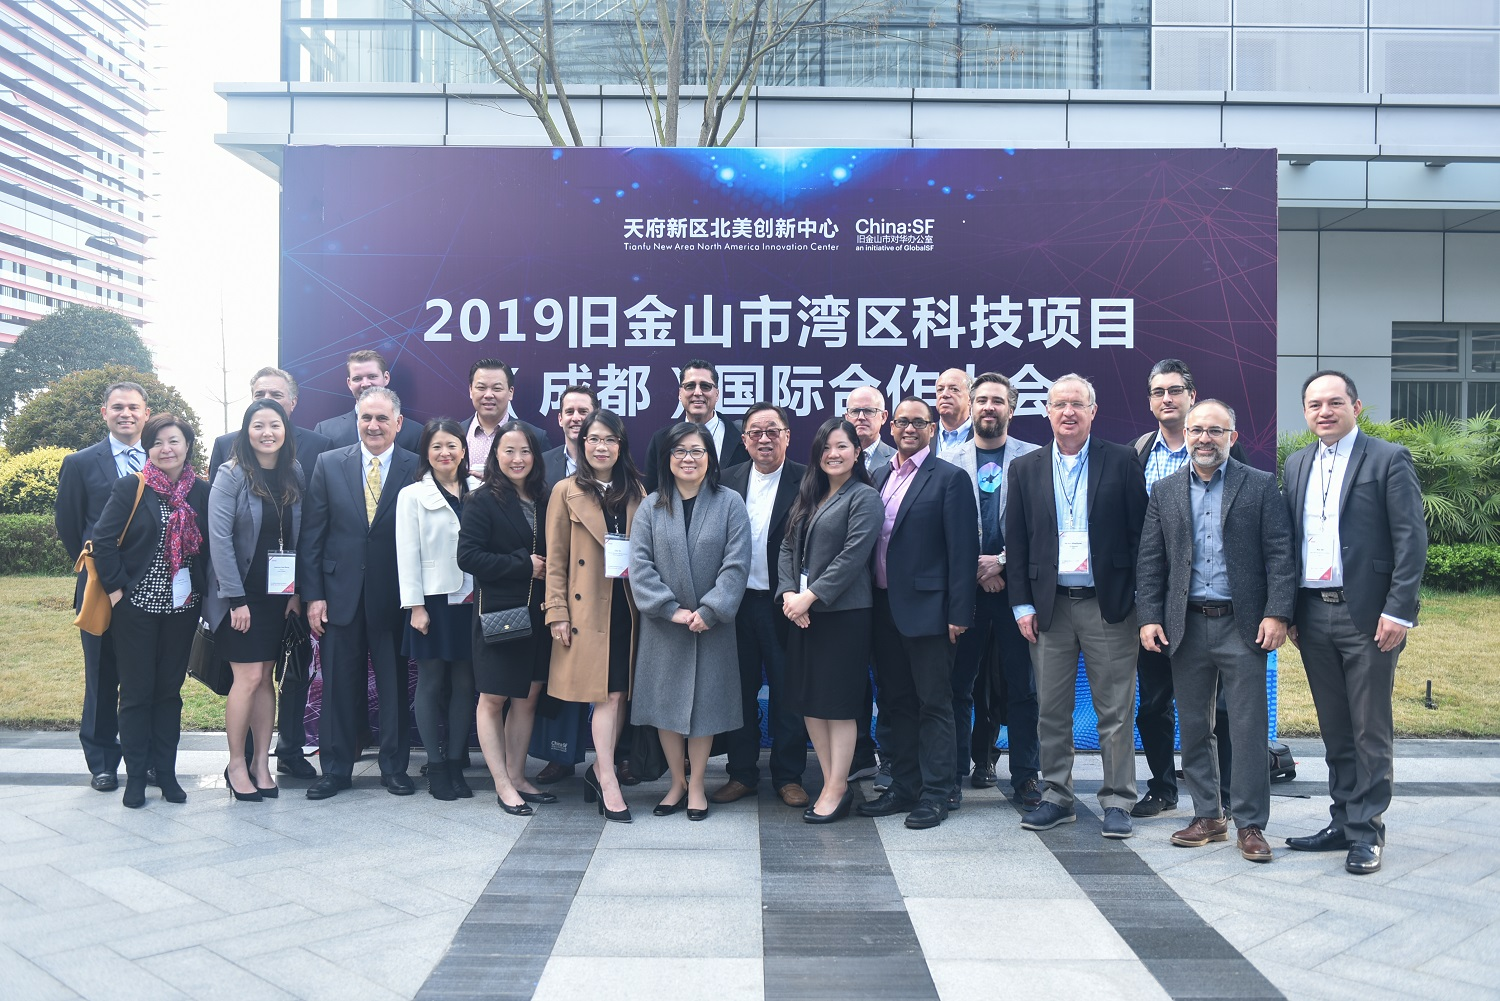 2019 ChinaSF Roadshow Group Photo.jpg